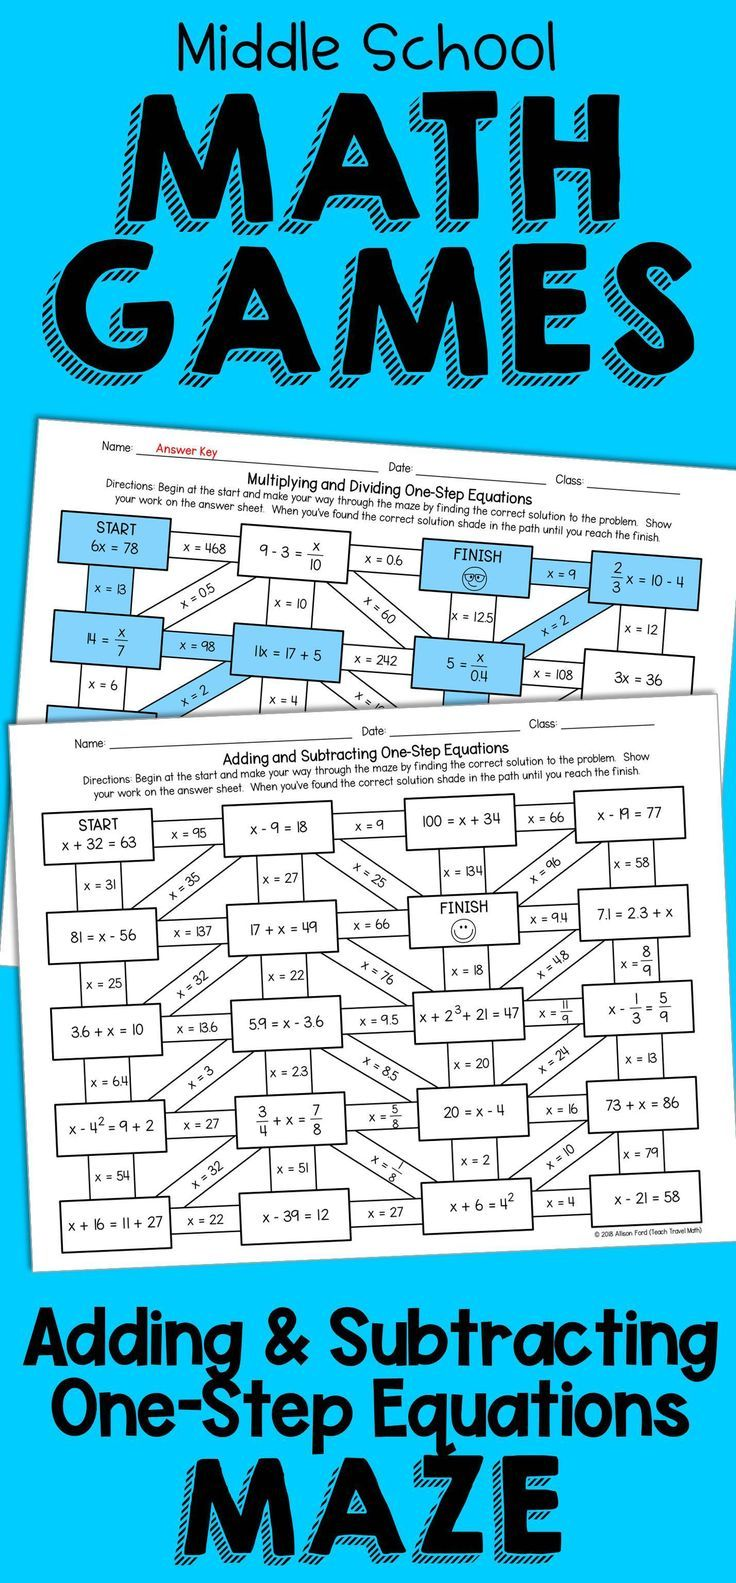 No Prep Worksheet Adding And Subtracting One Step Equations Middle School Math Games Maze Activity Math Games Middle School One Step Equations Math Games